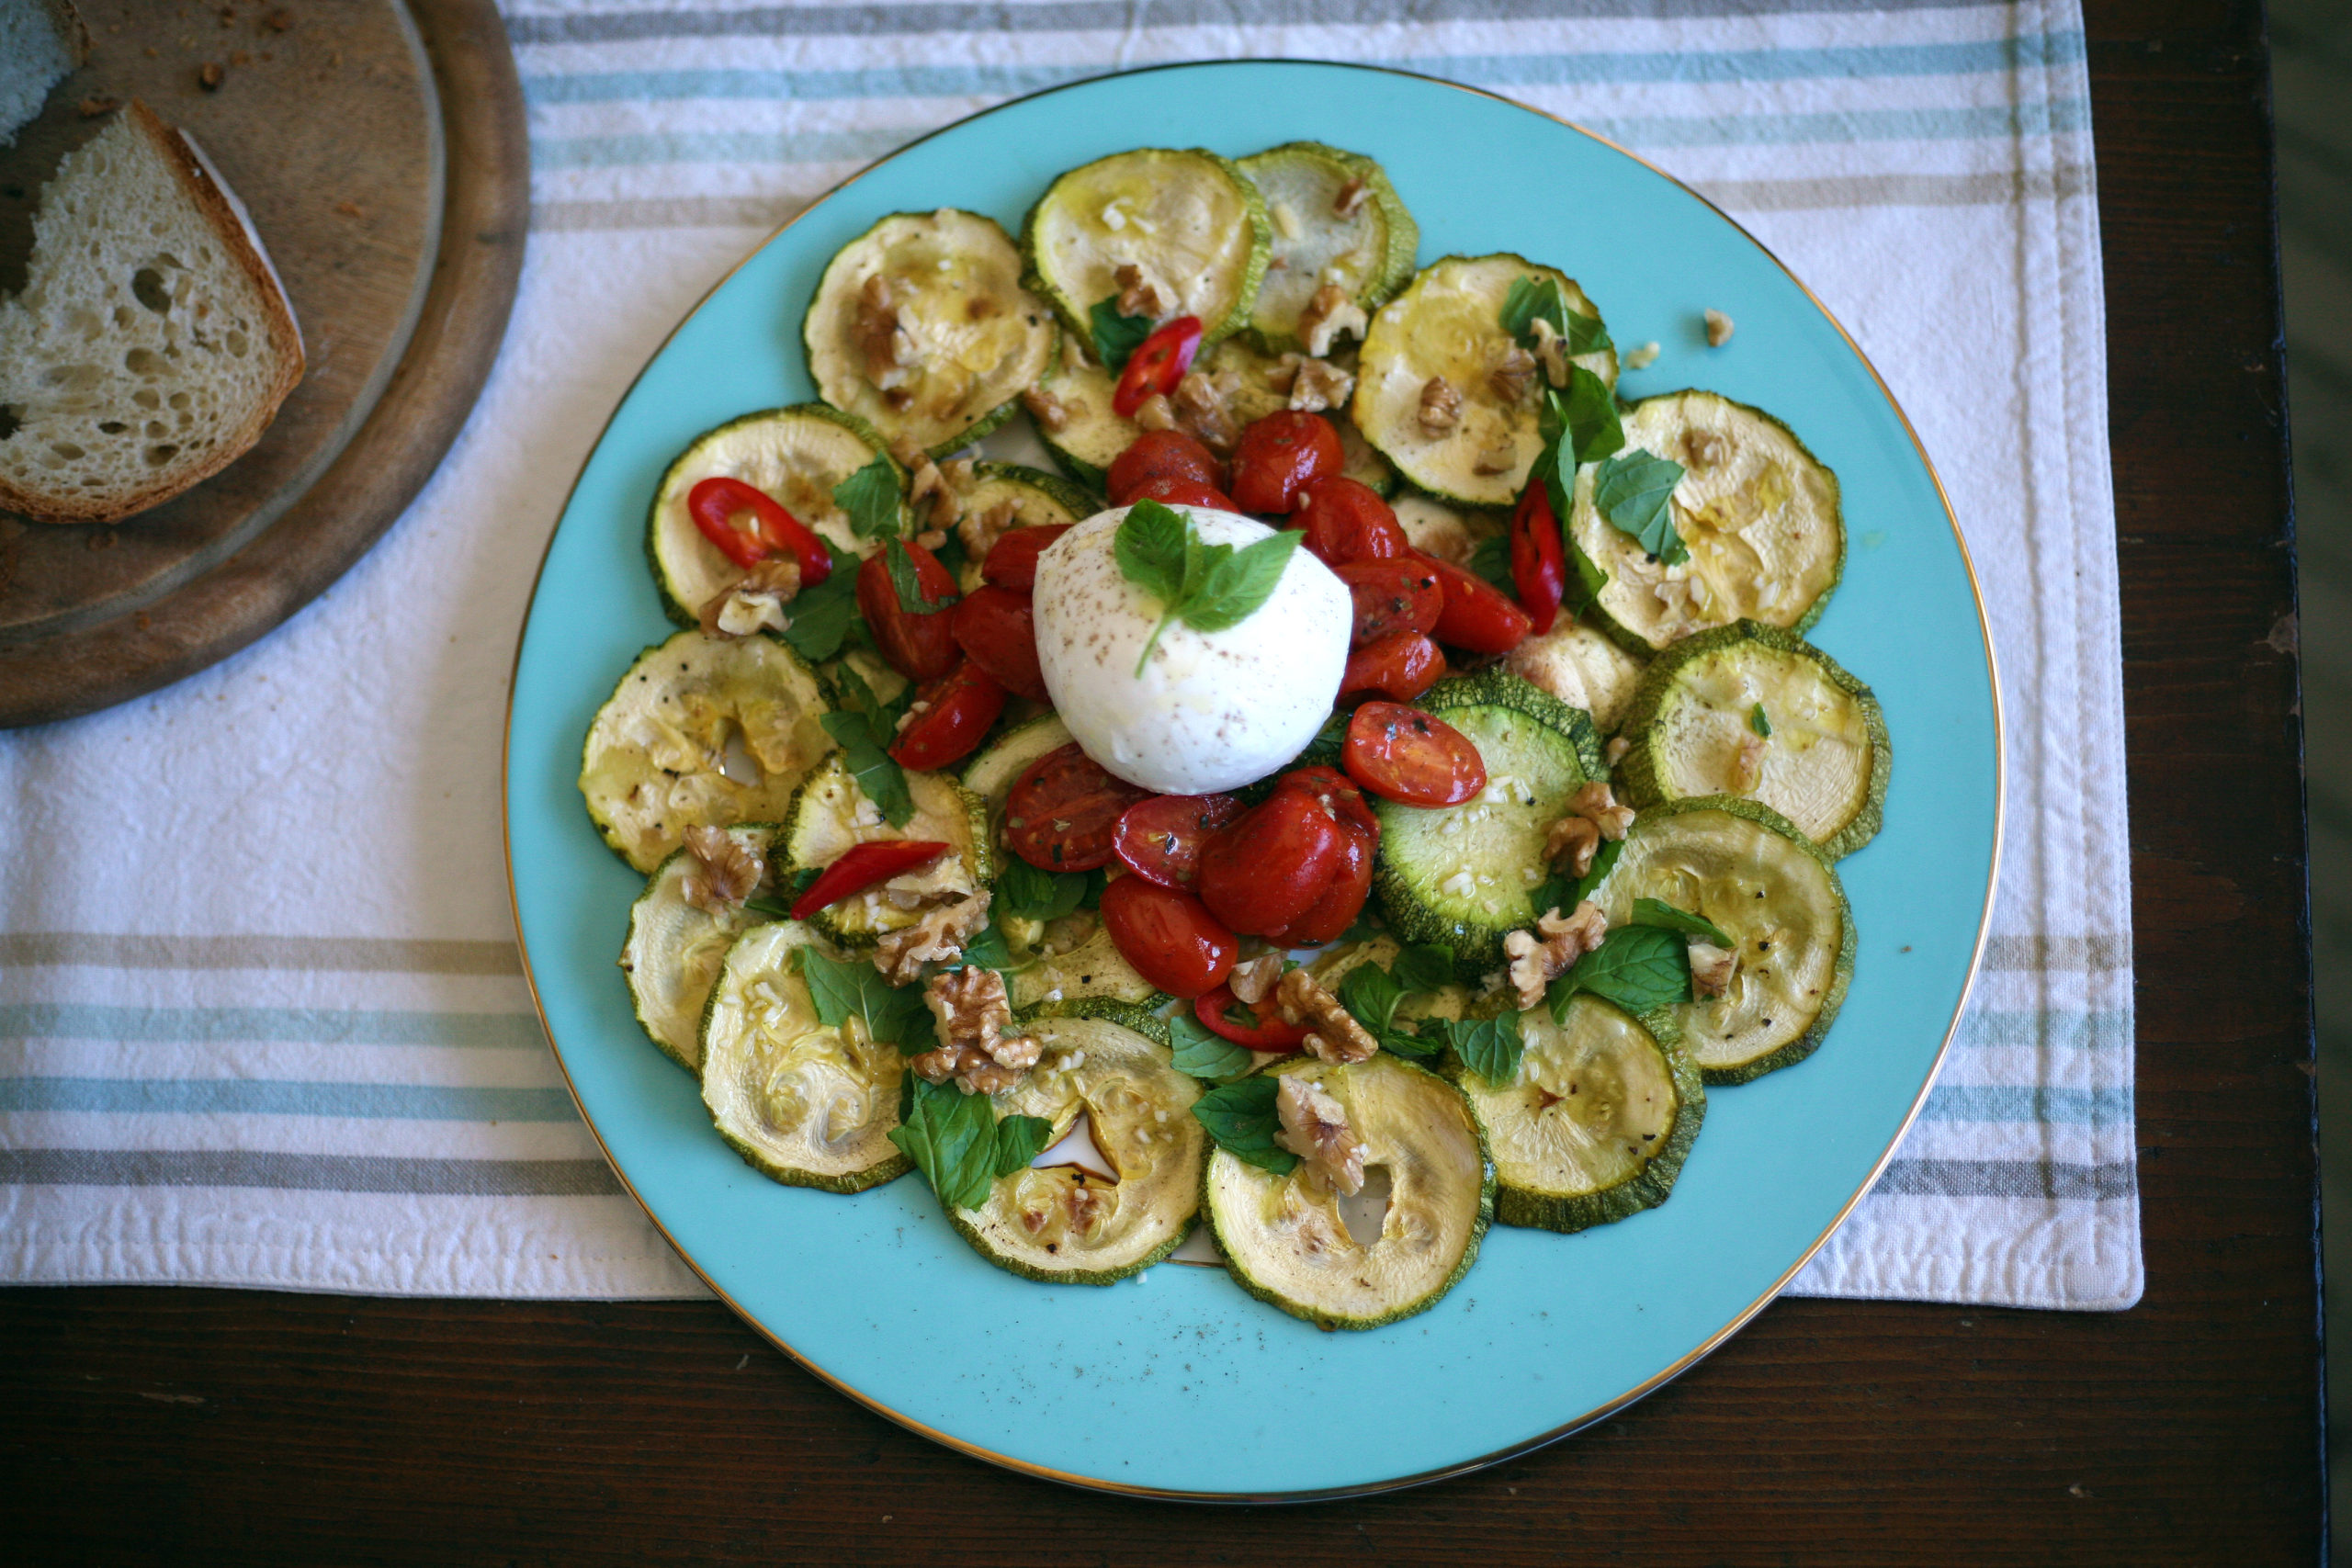 Roasted marrows and tomatoes with mozzarella di bufola